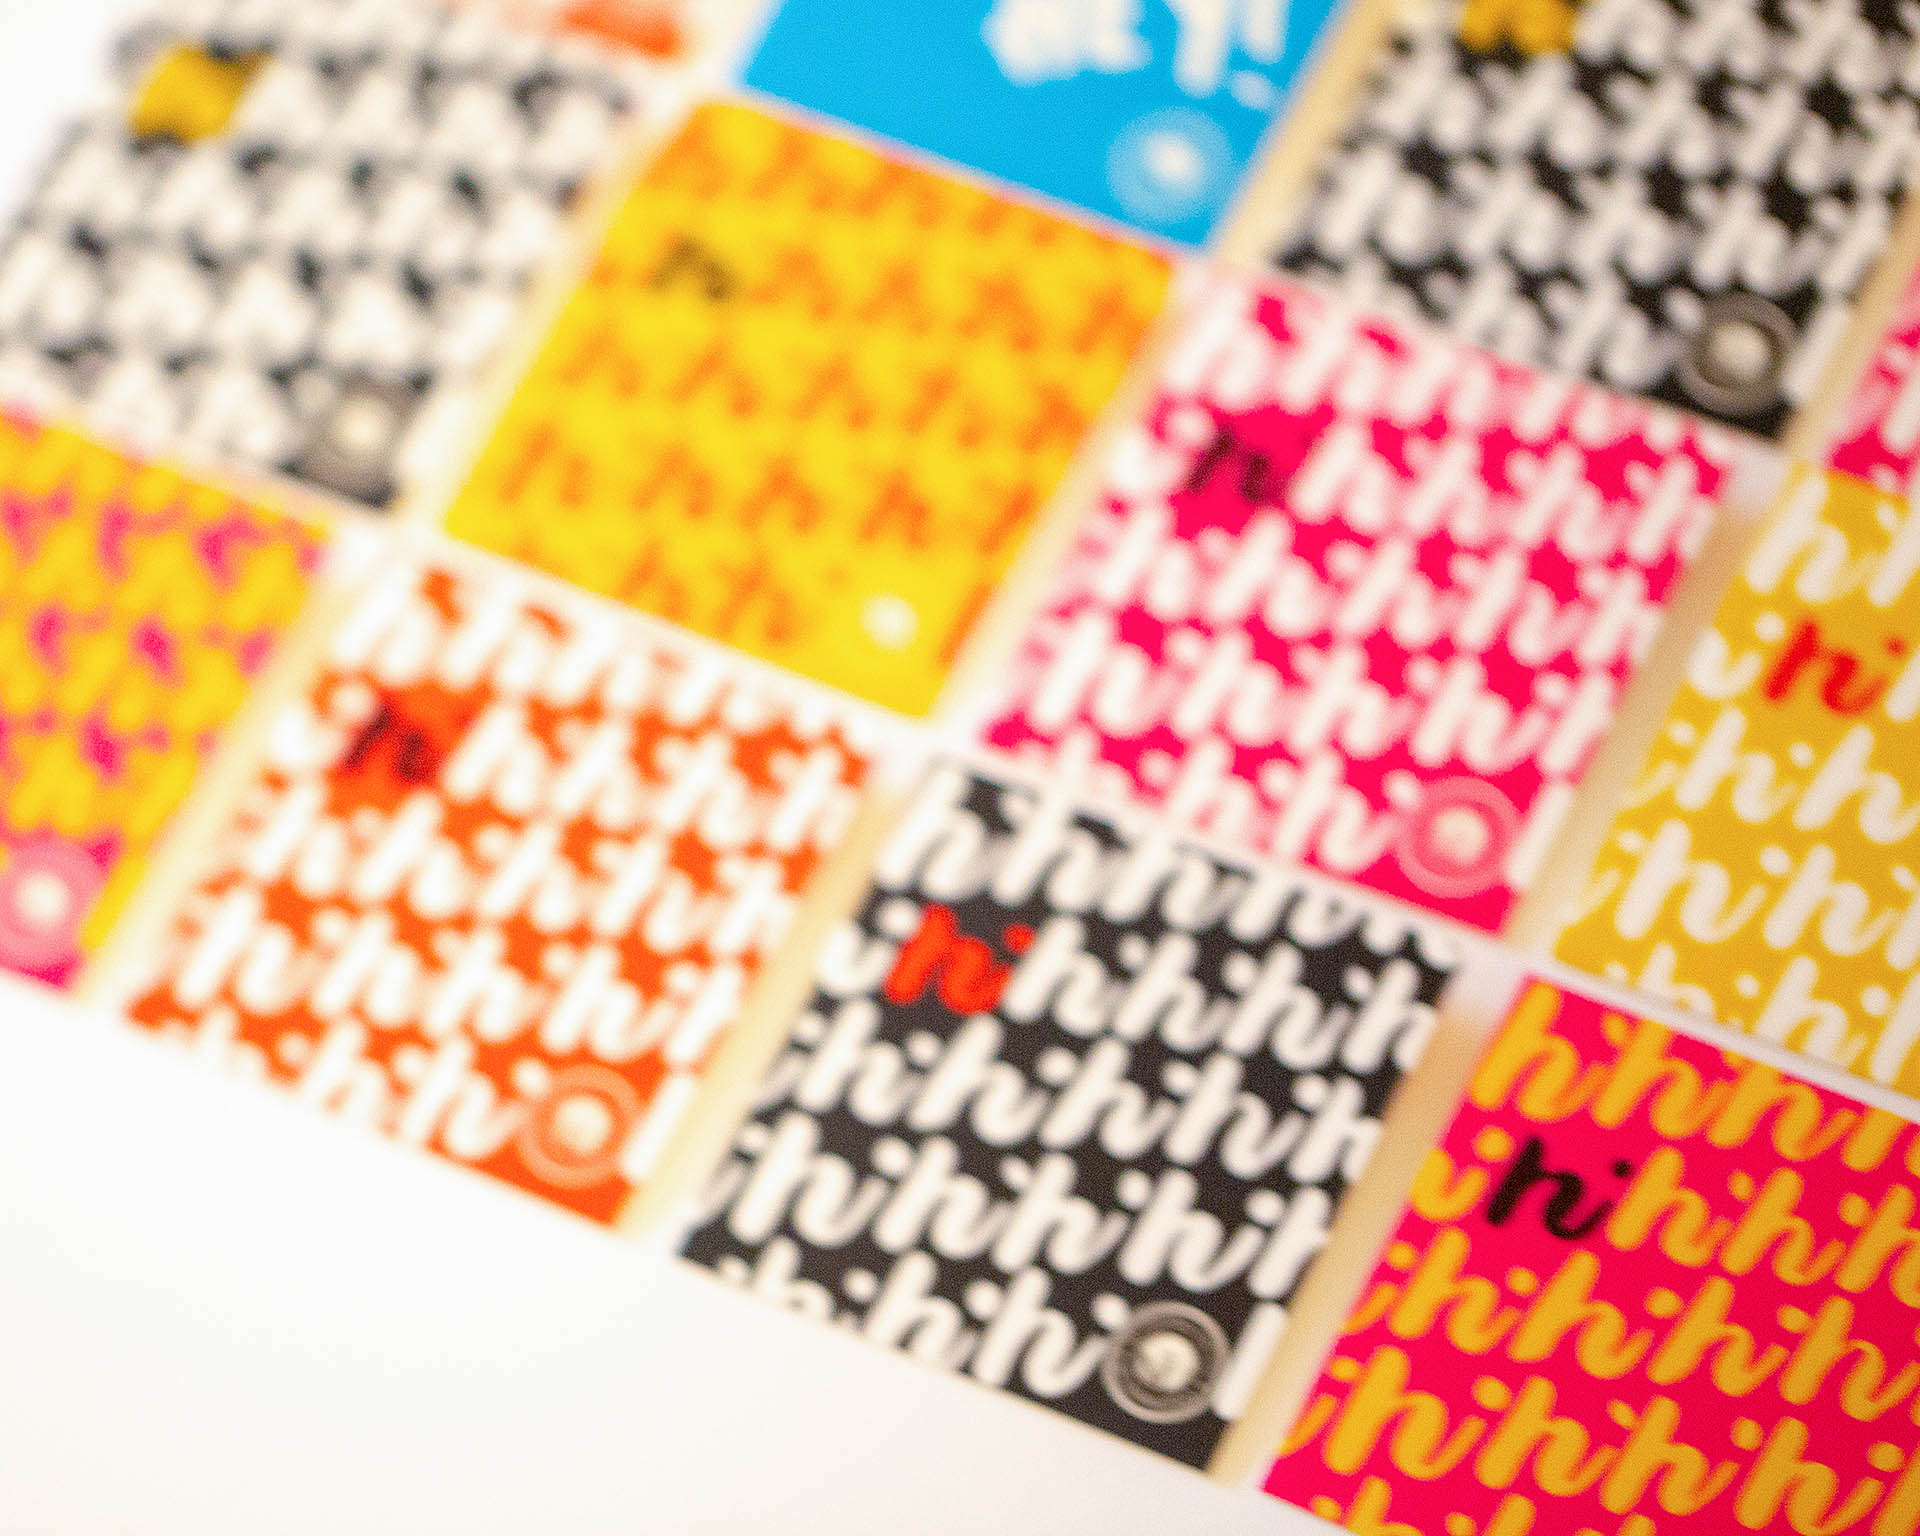 A grid of colorful square cards on a white background